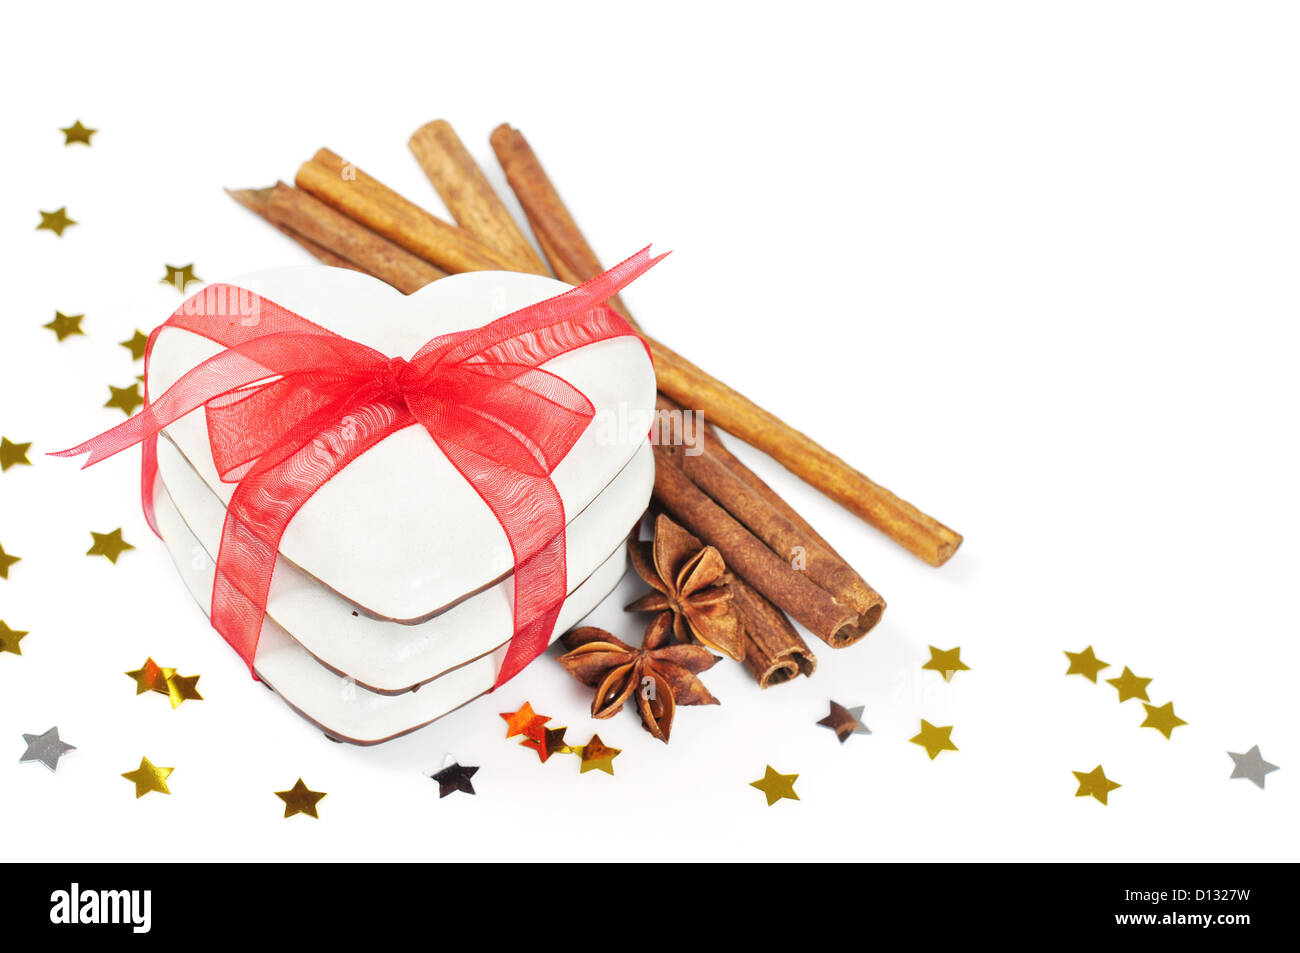 Gingerbread cookies with red ribbon and cinnamon isolated on white background - Stock Image